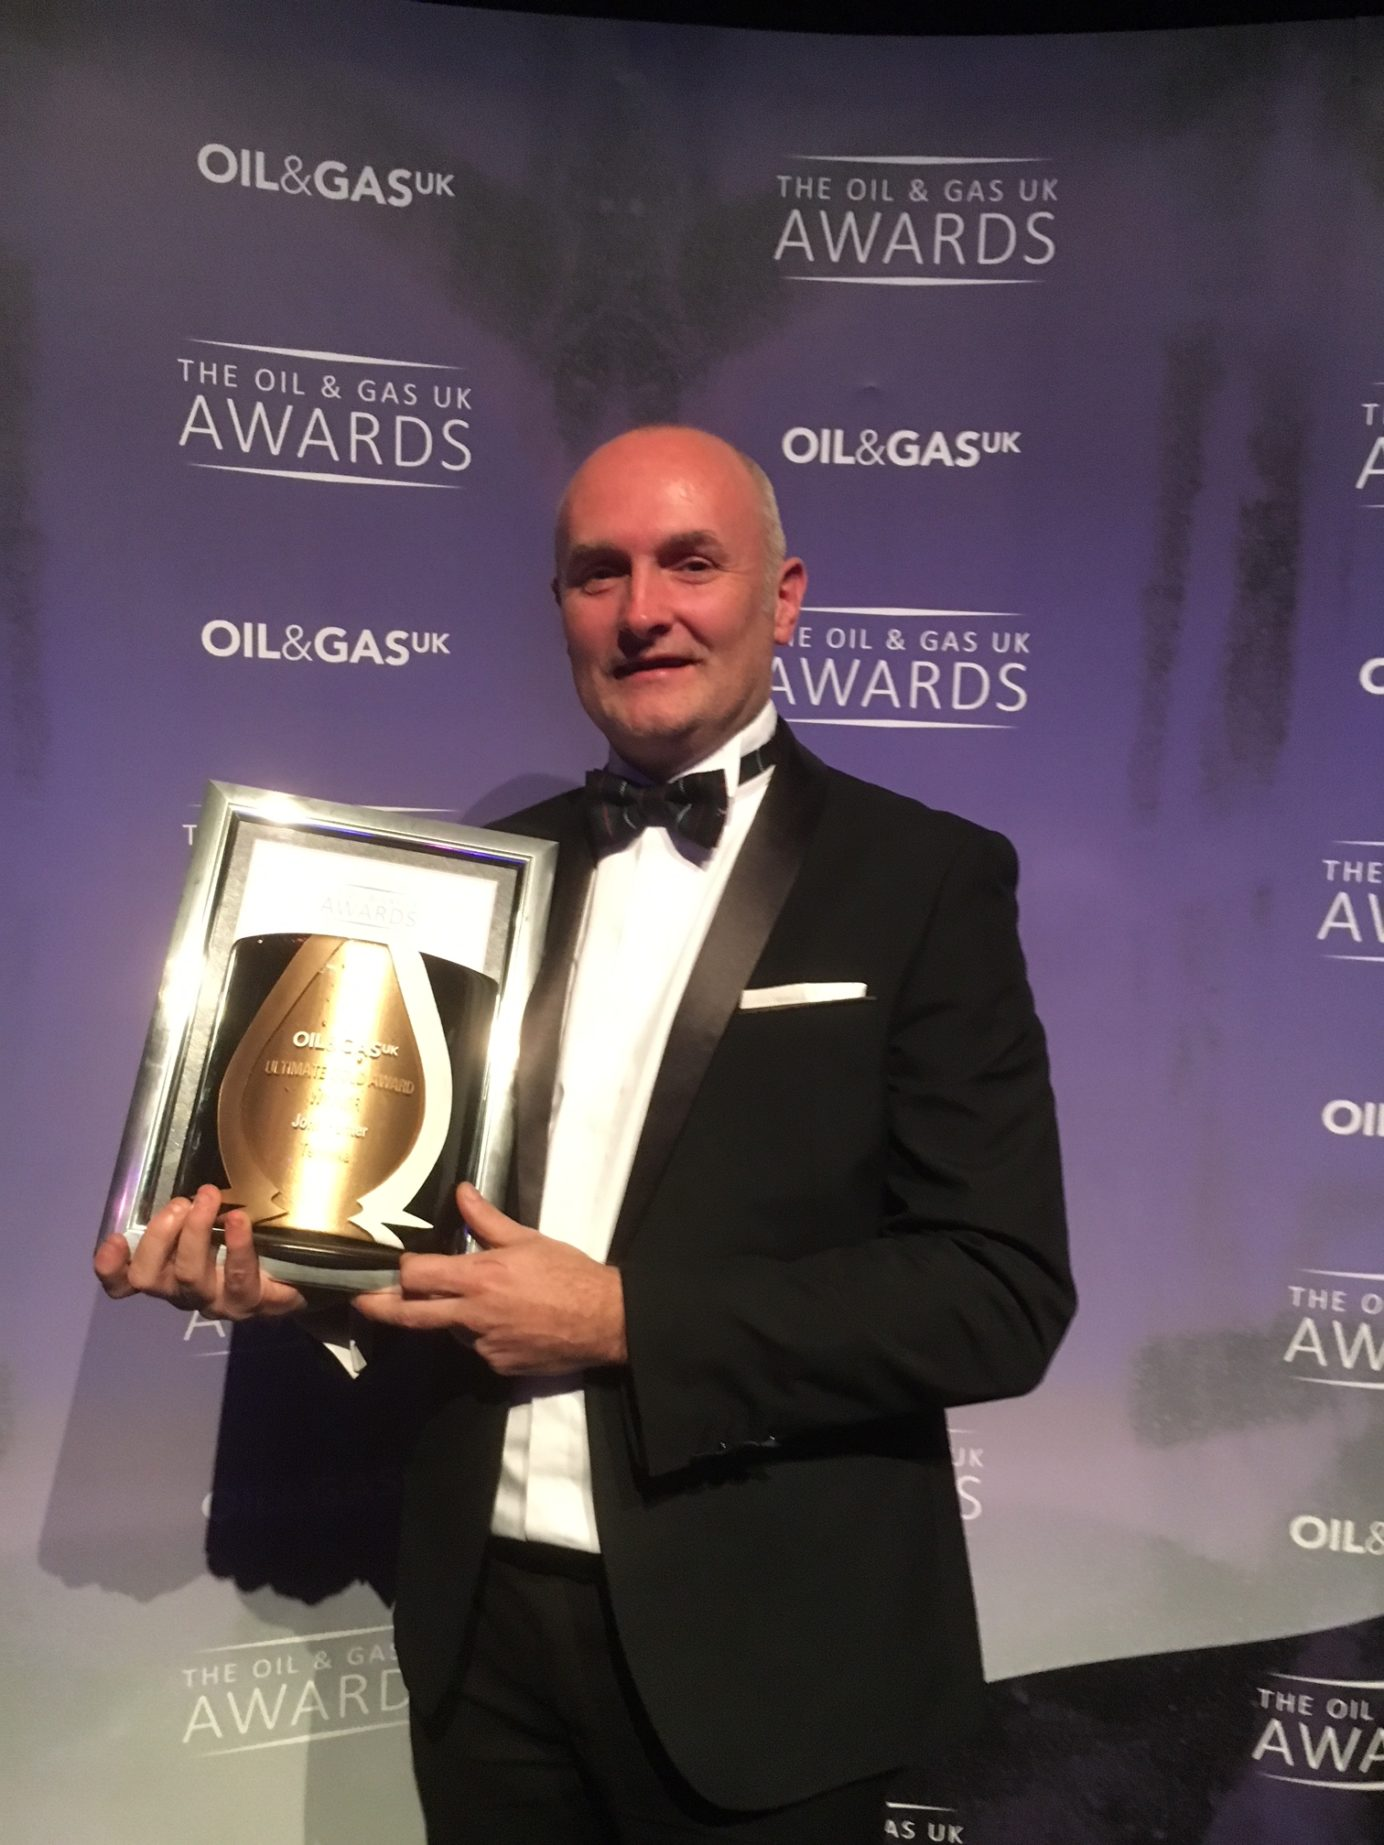 man holding award at the Oil & Gas UK Awards